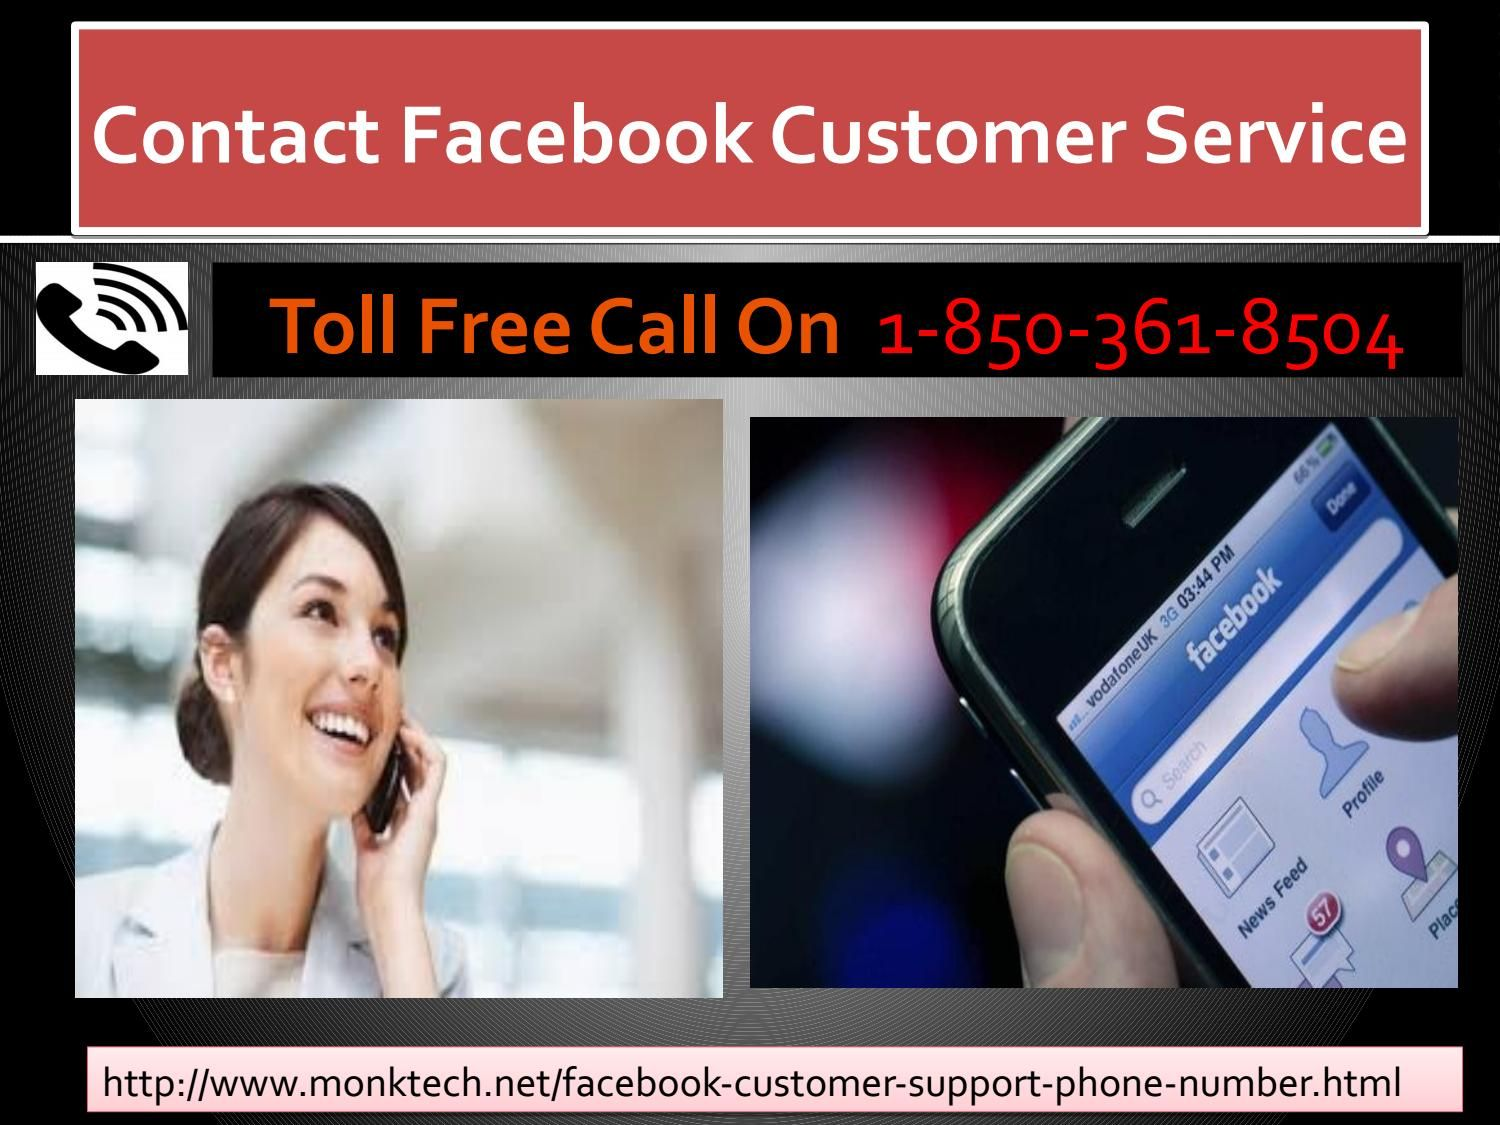 Contact facebook customer service to make more friend on